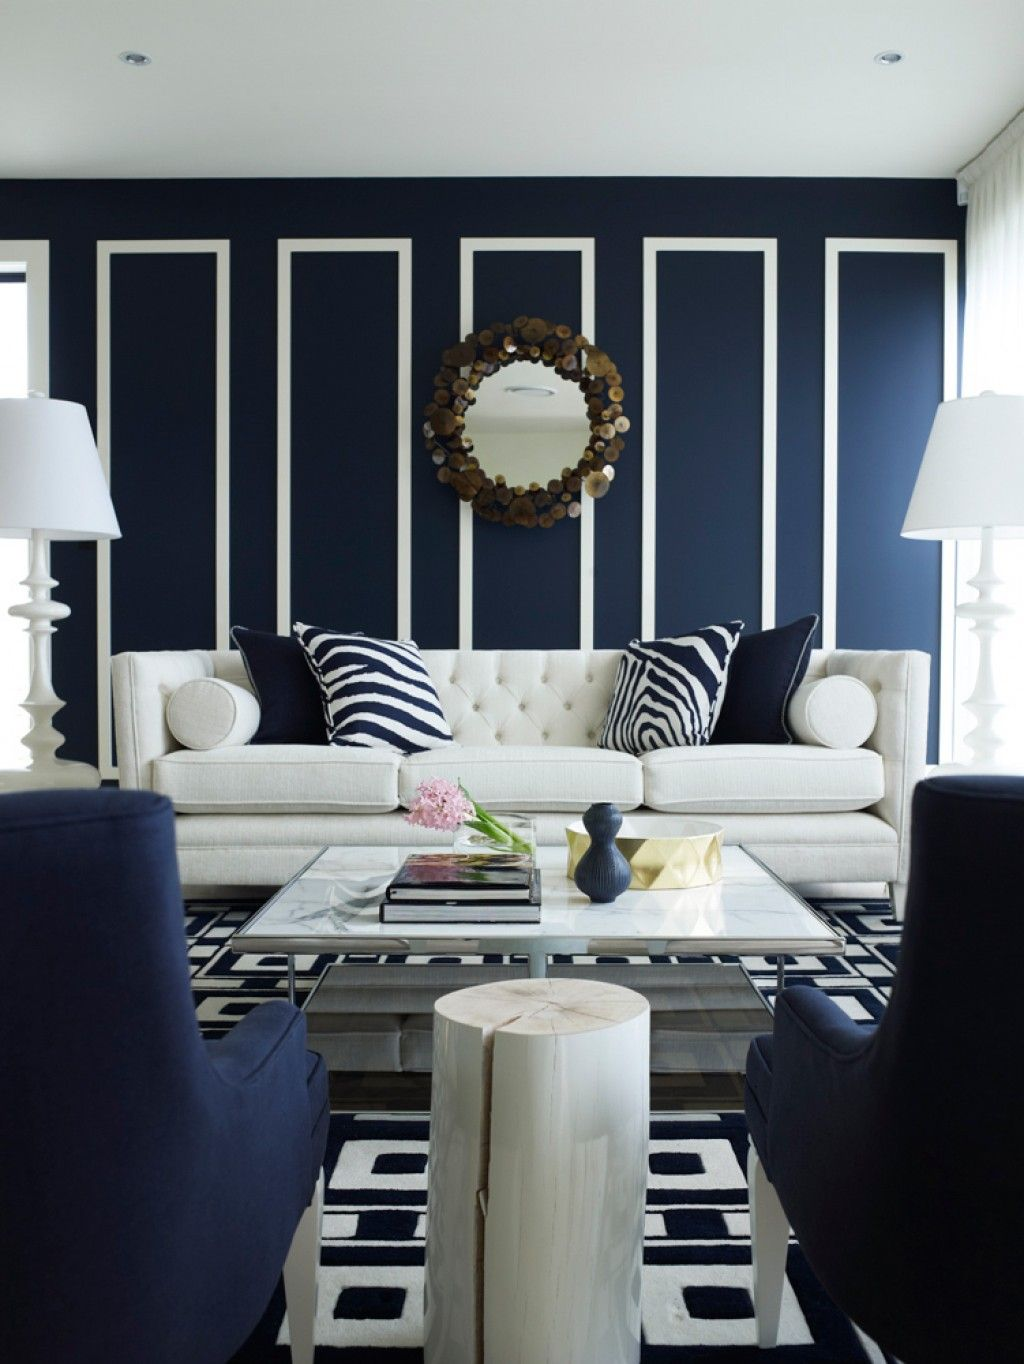 Top 6 Living Room Decor Ideas  Navy living rooms, Navy and white